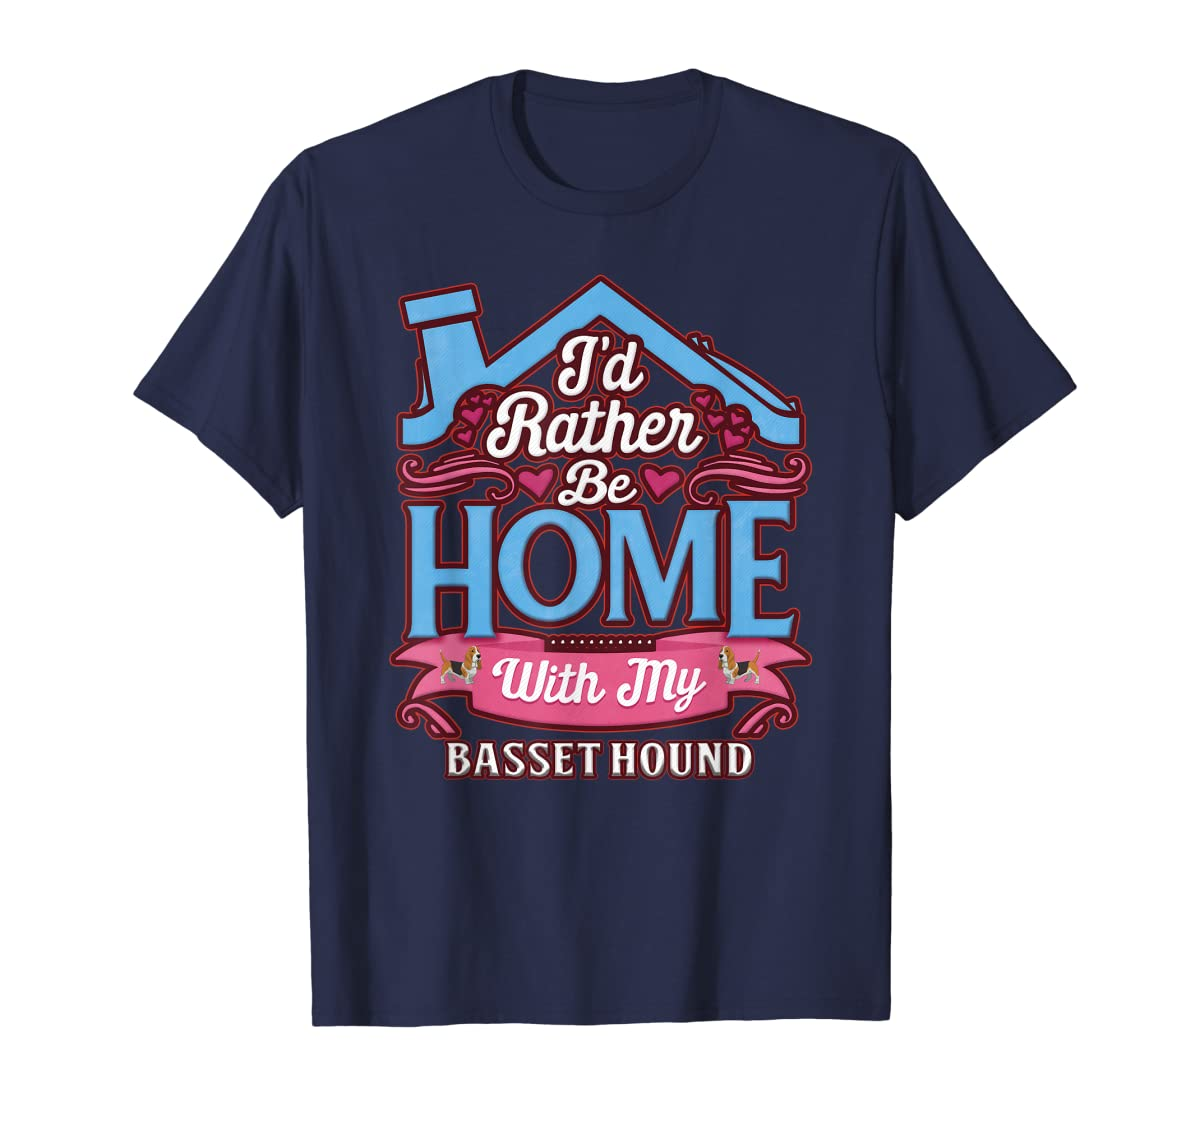 Basset Hound Home Dog T Shirt-Men's T-Shirt-Navy